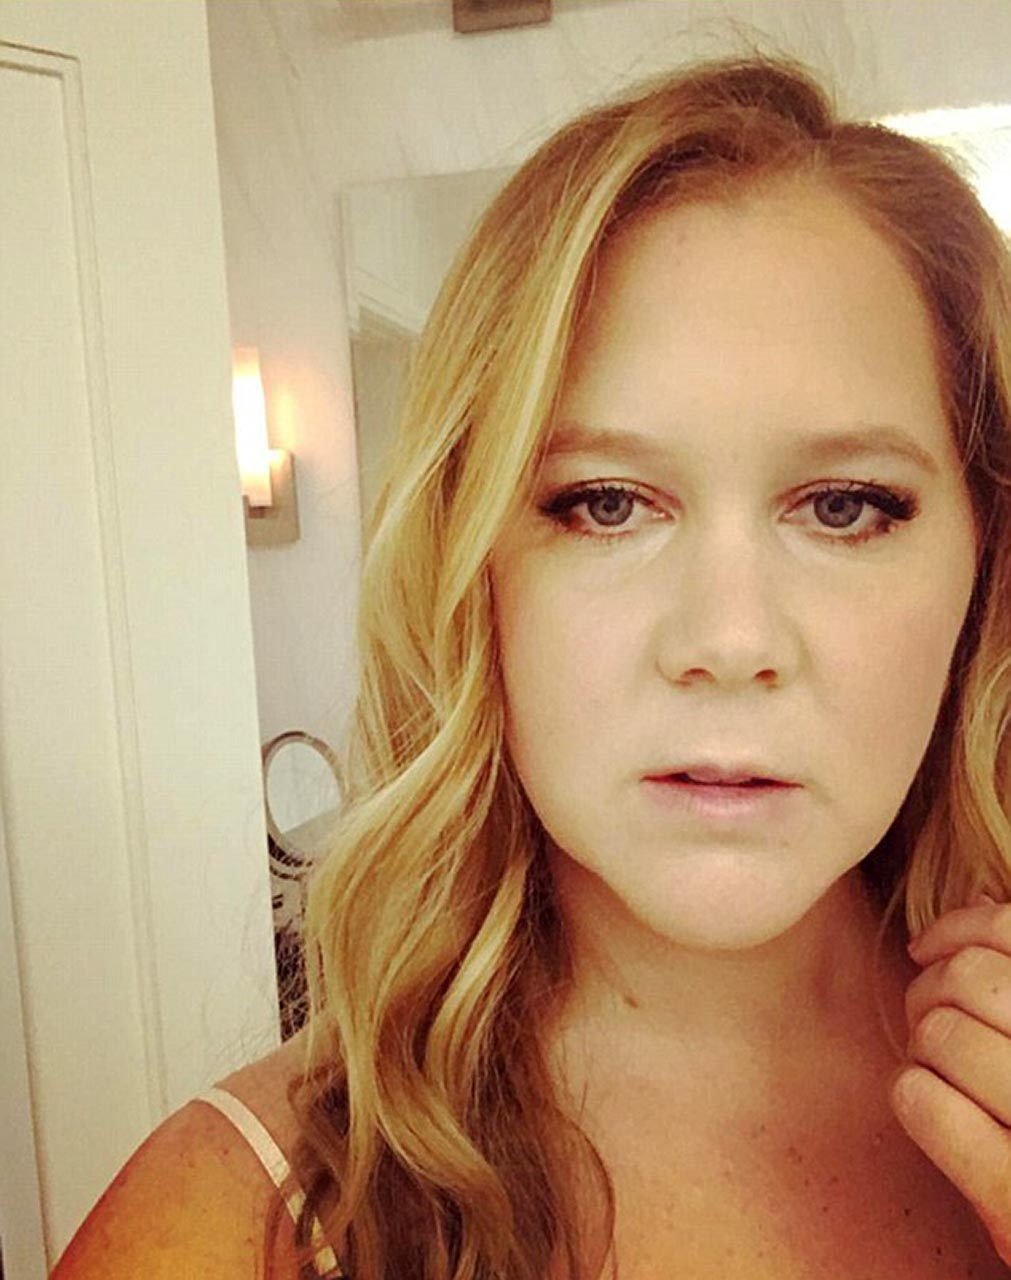 Fat Stand Up Comedian Amy Schumer Nude & Private Selfies